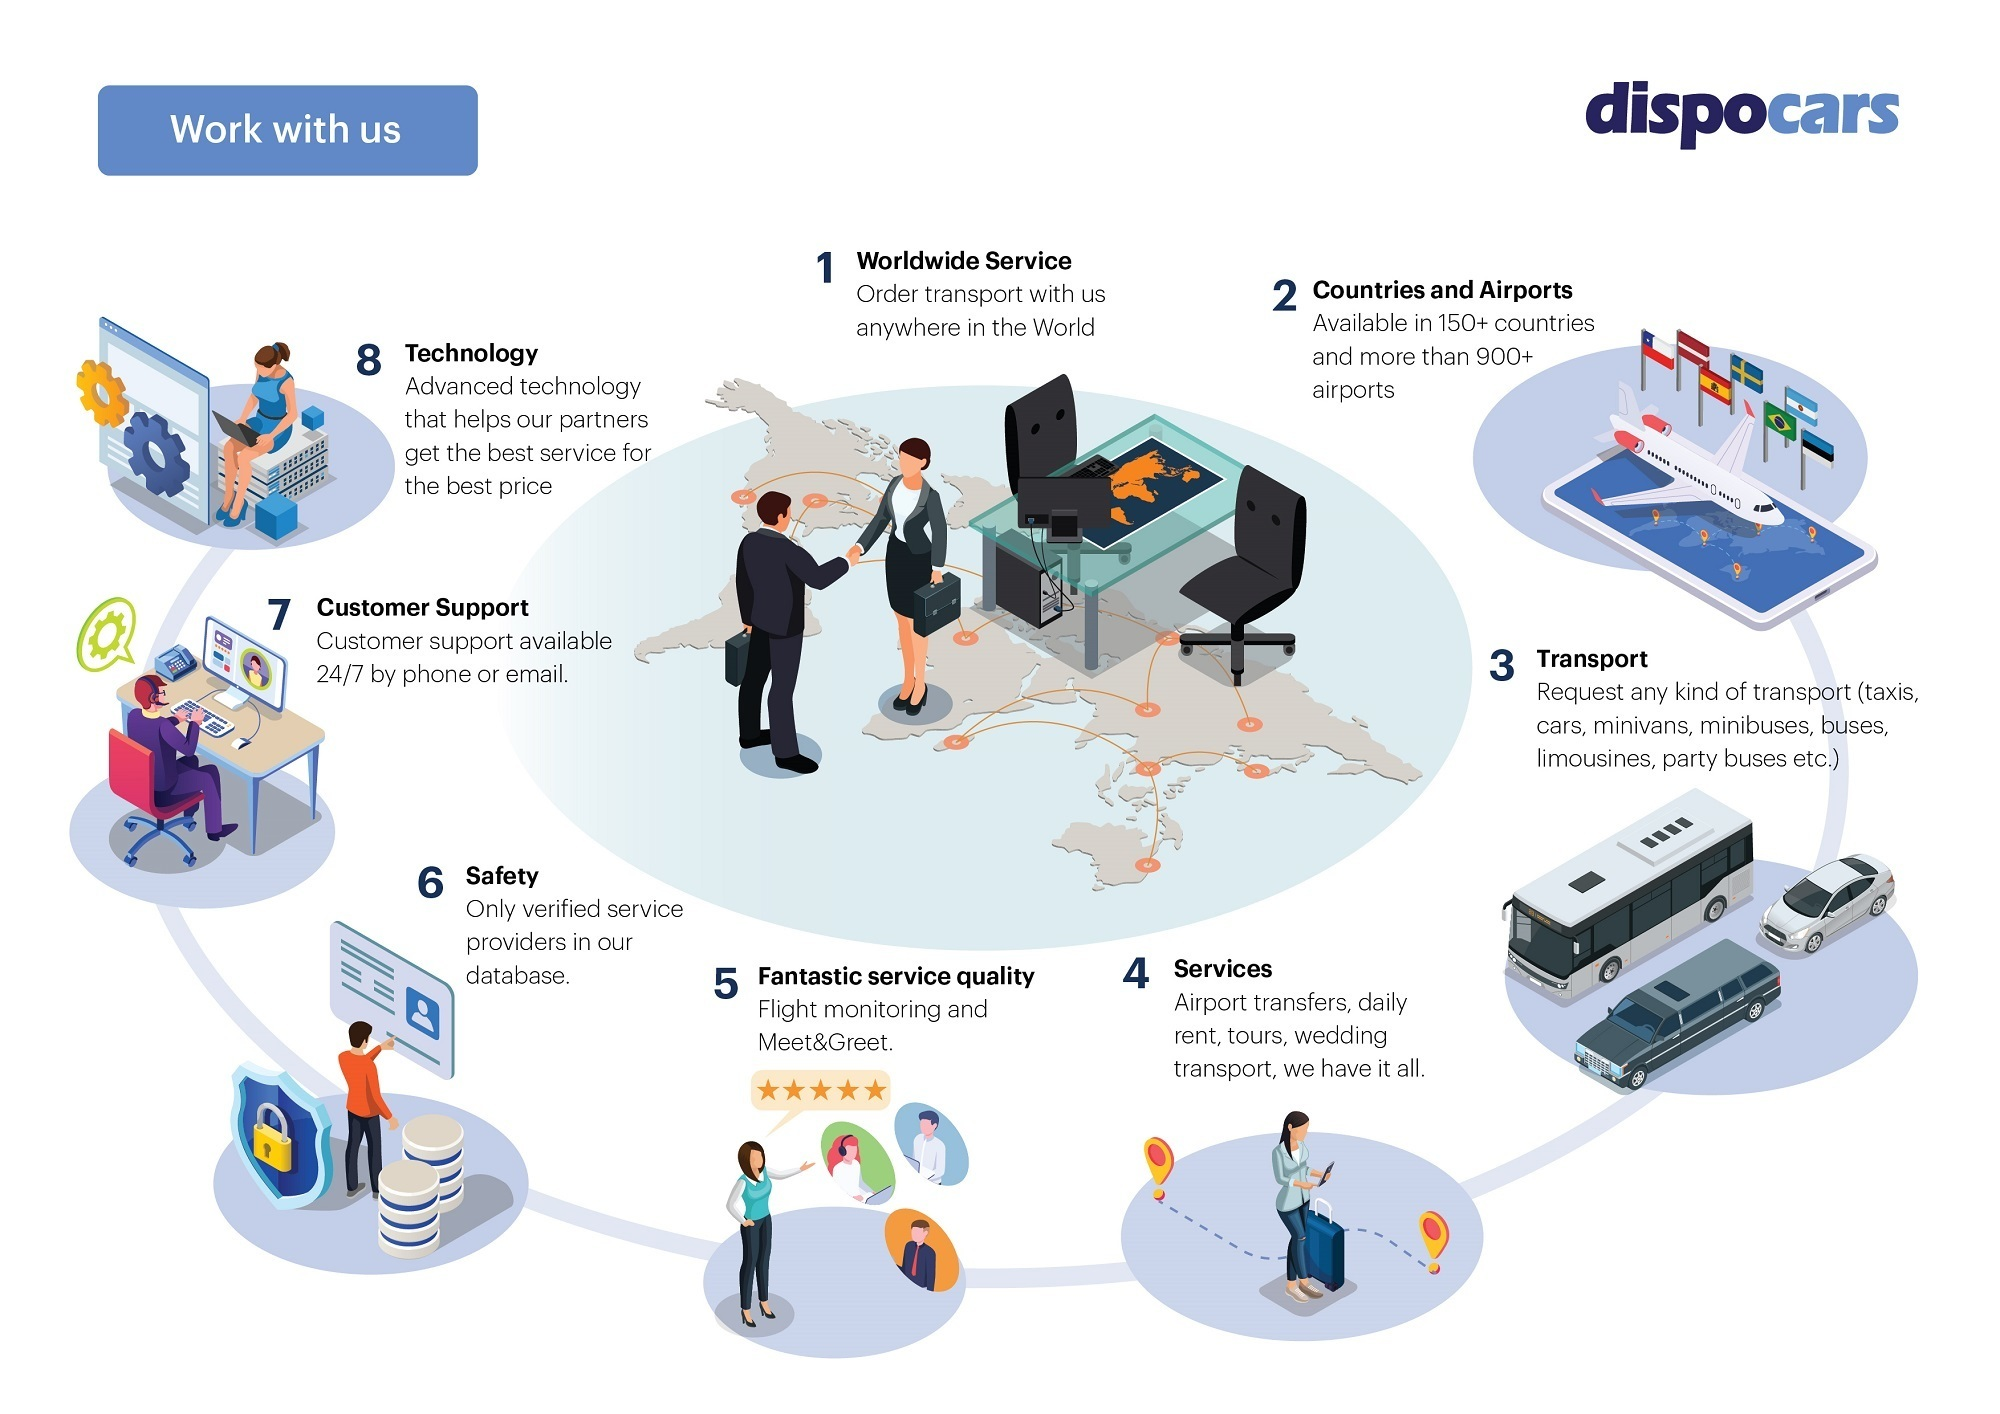 DispoCars - Work with us